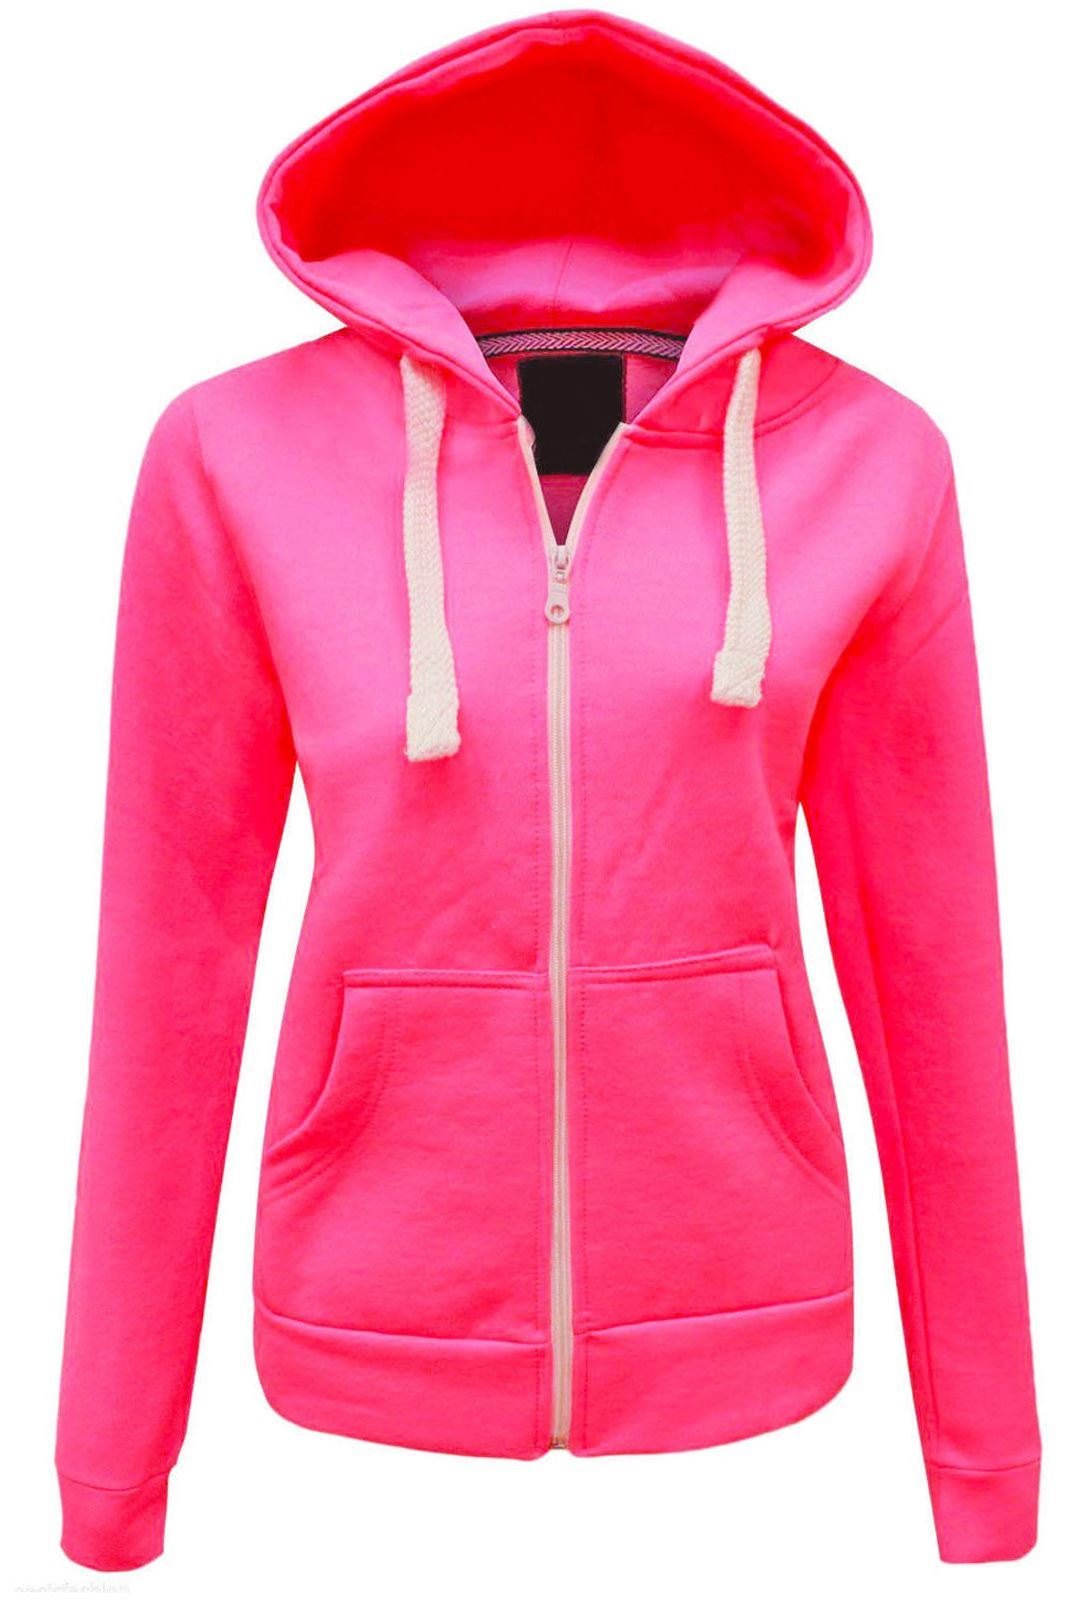 how to change a hooded jumper to zipper